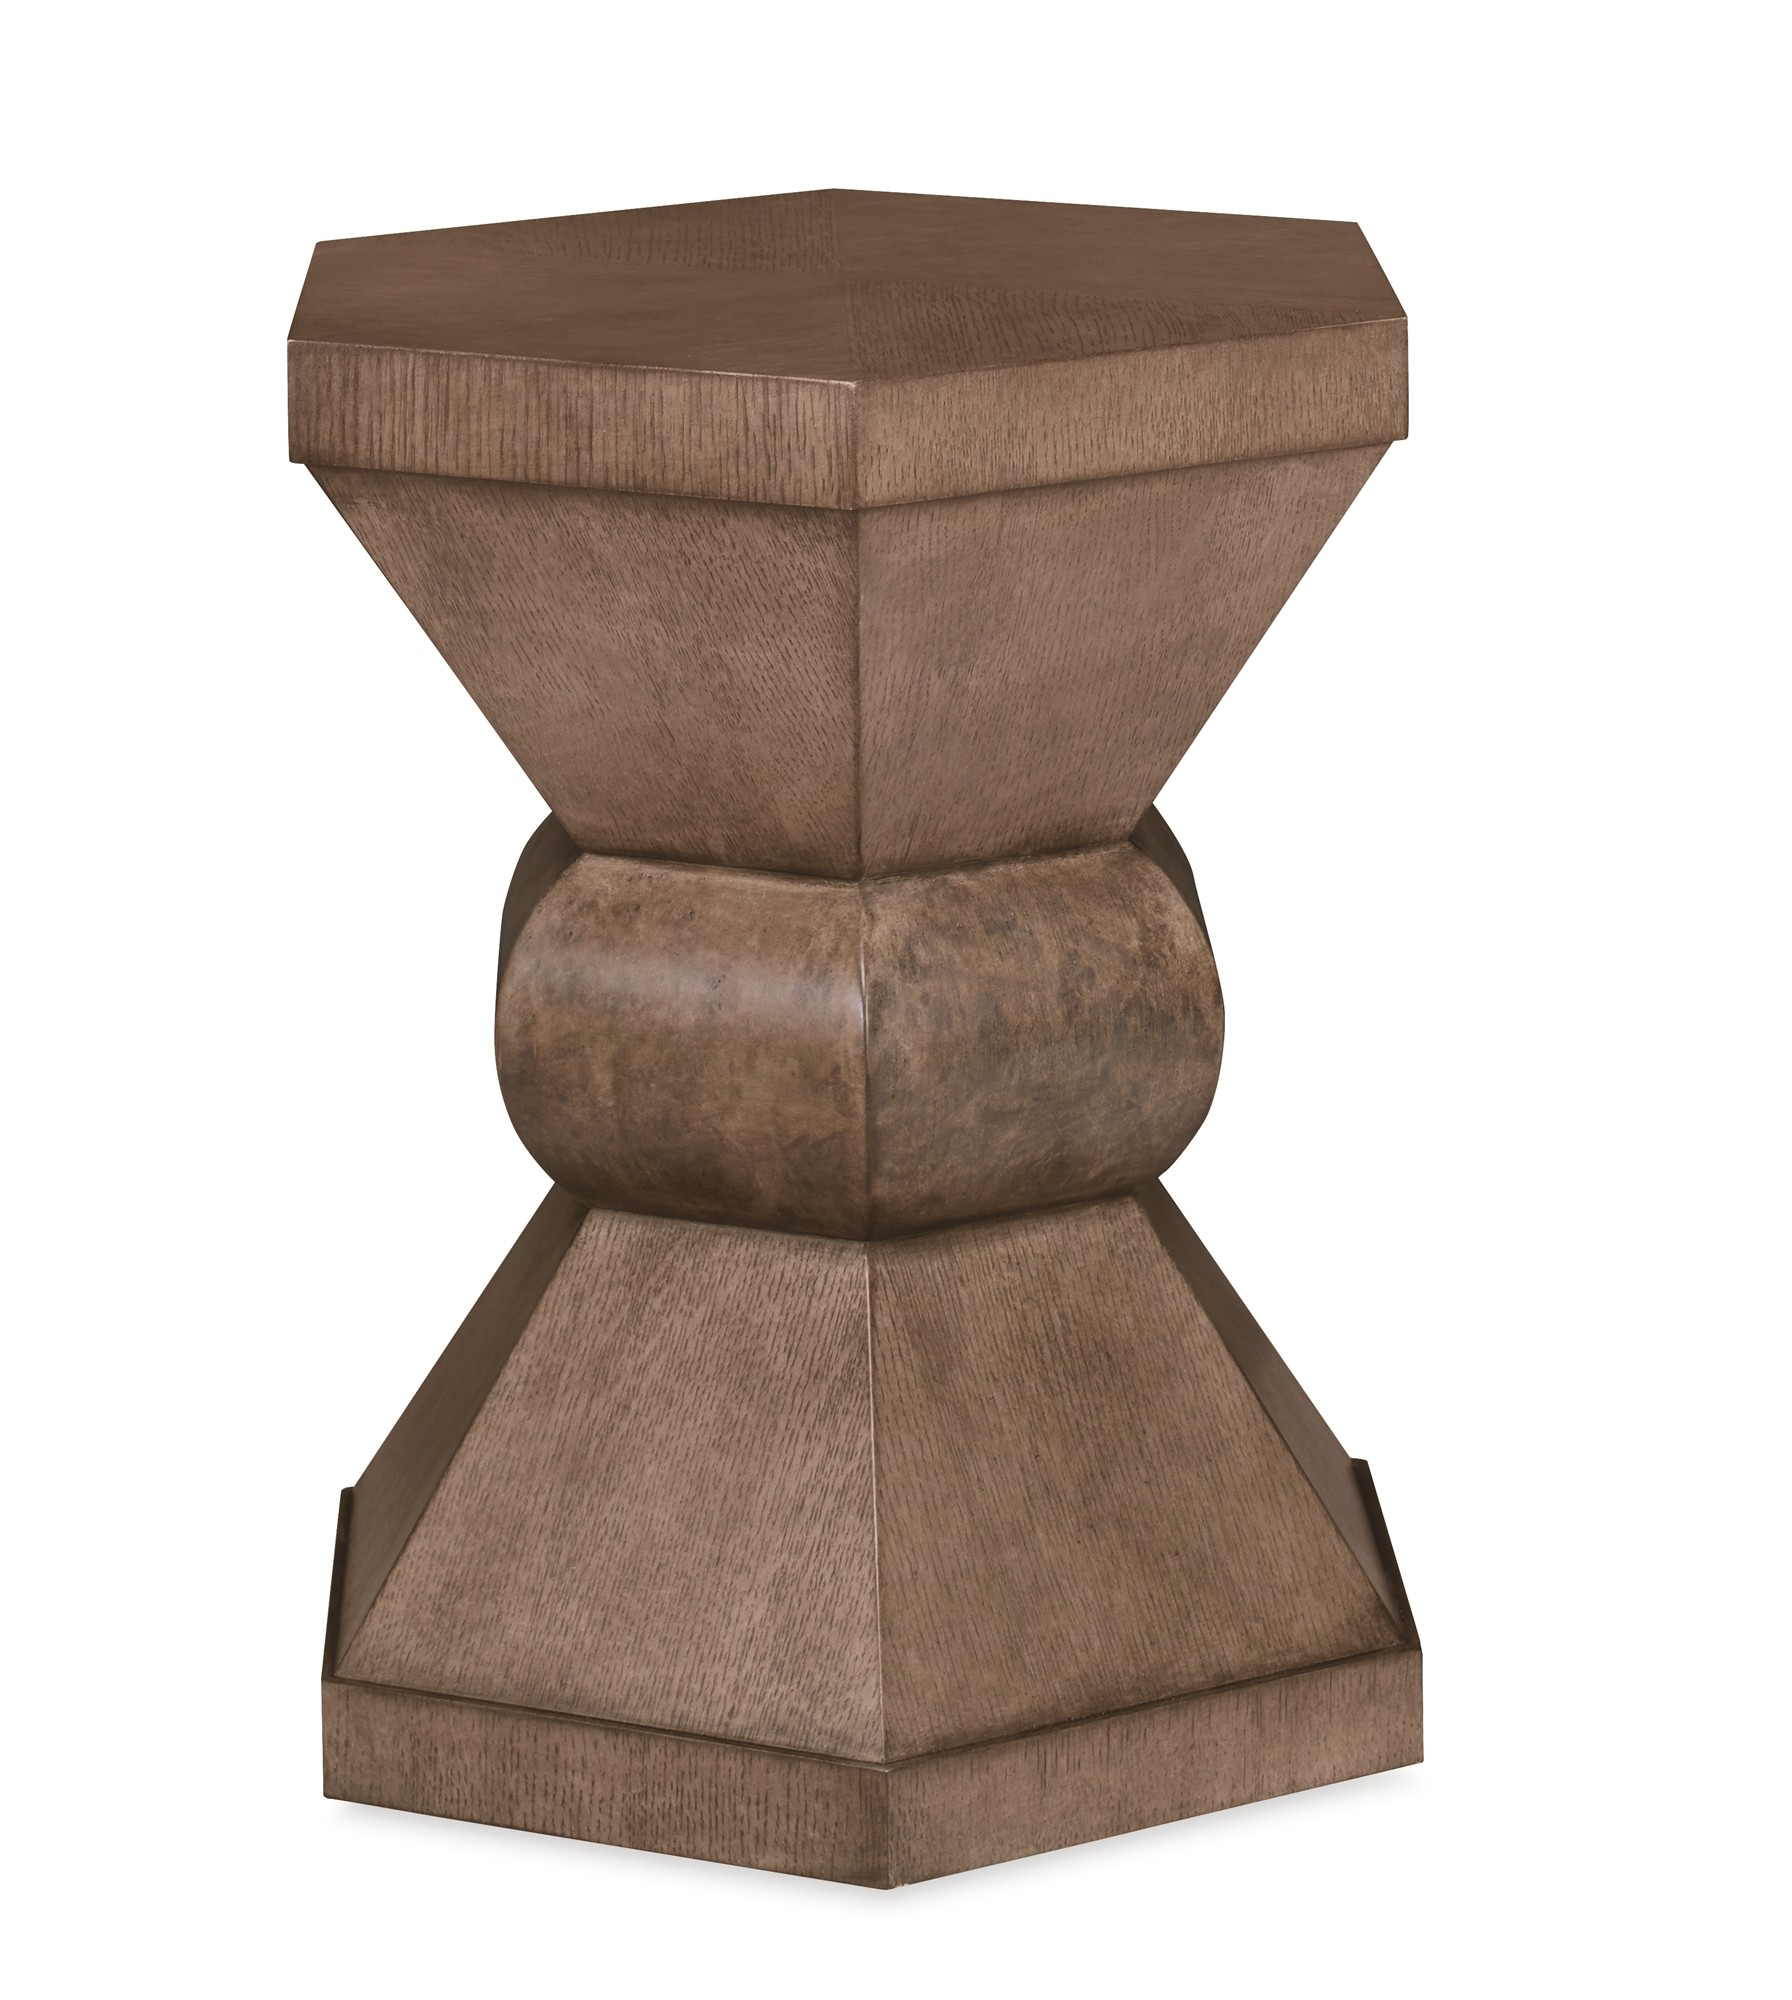 Casa Bella Hexagonal Chairside Table - Timber Gray Finish